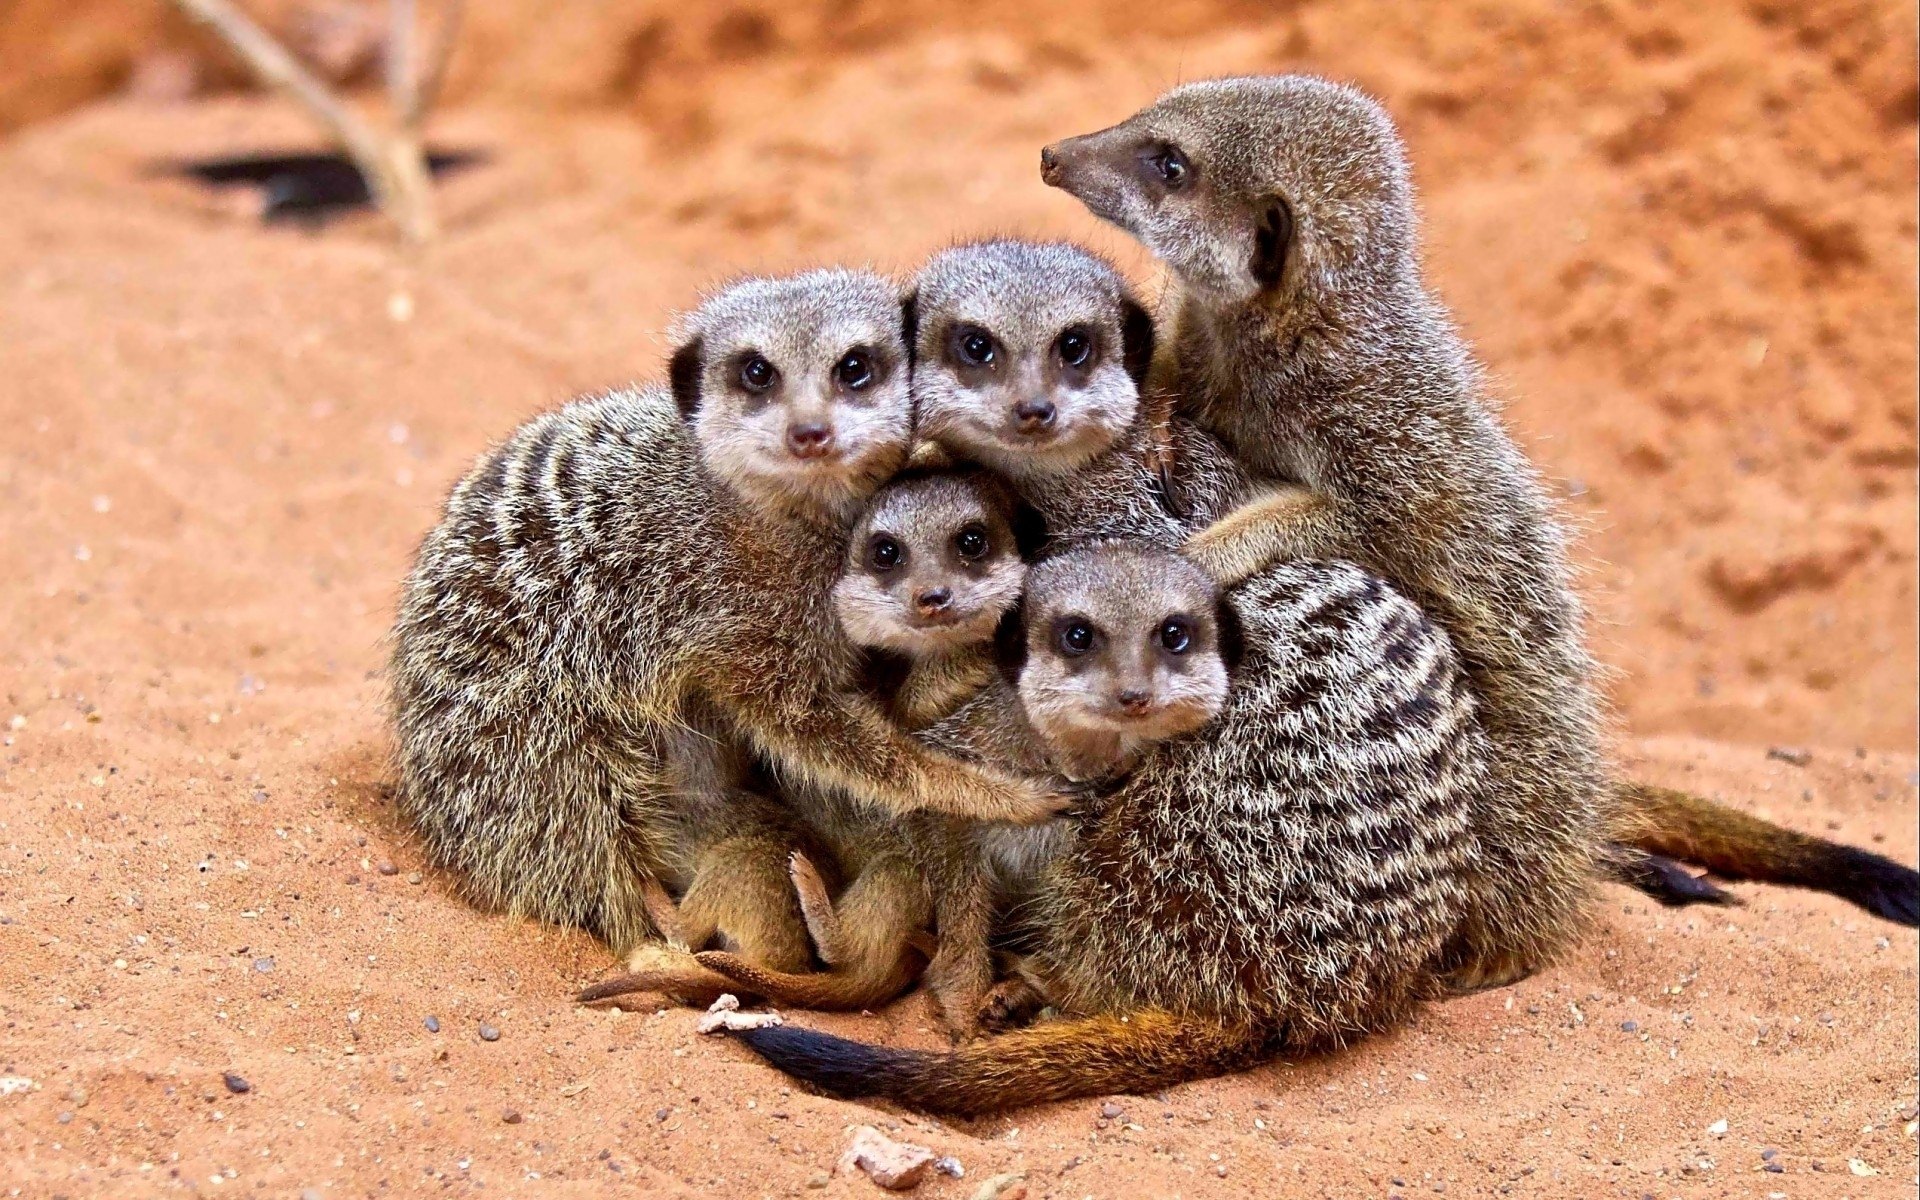 cute animals A11 meerkat